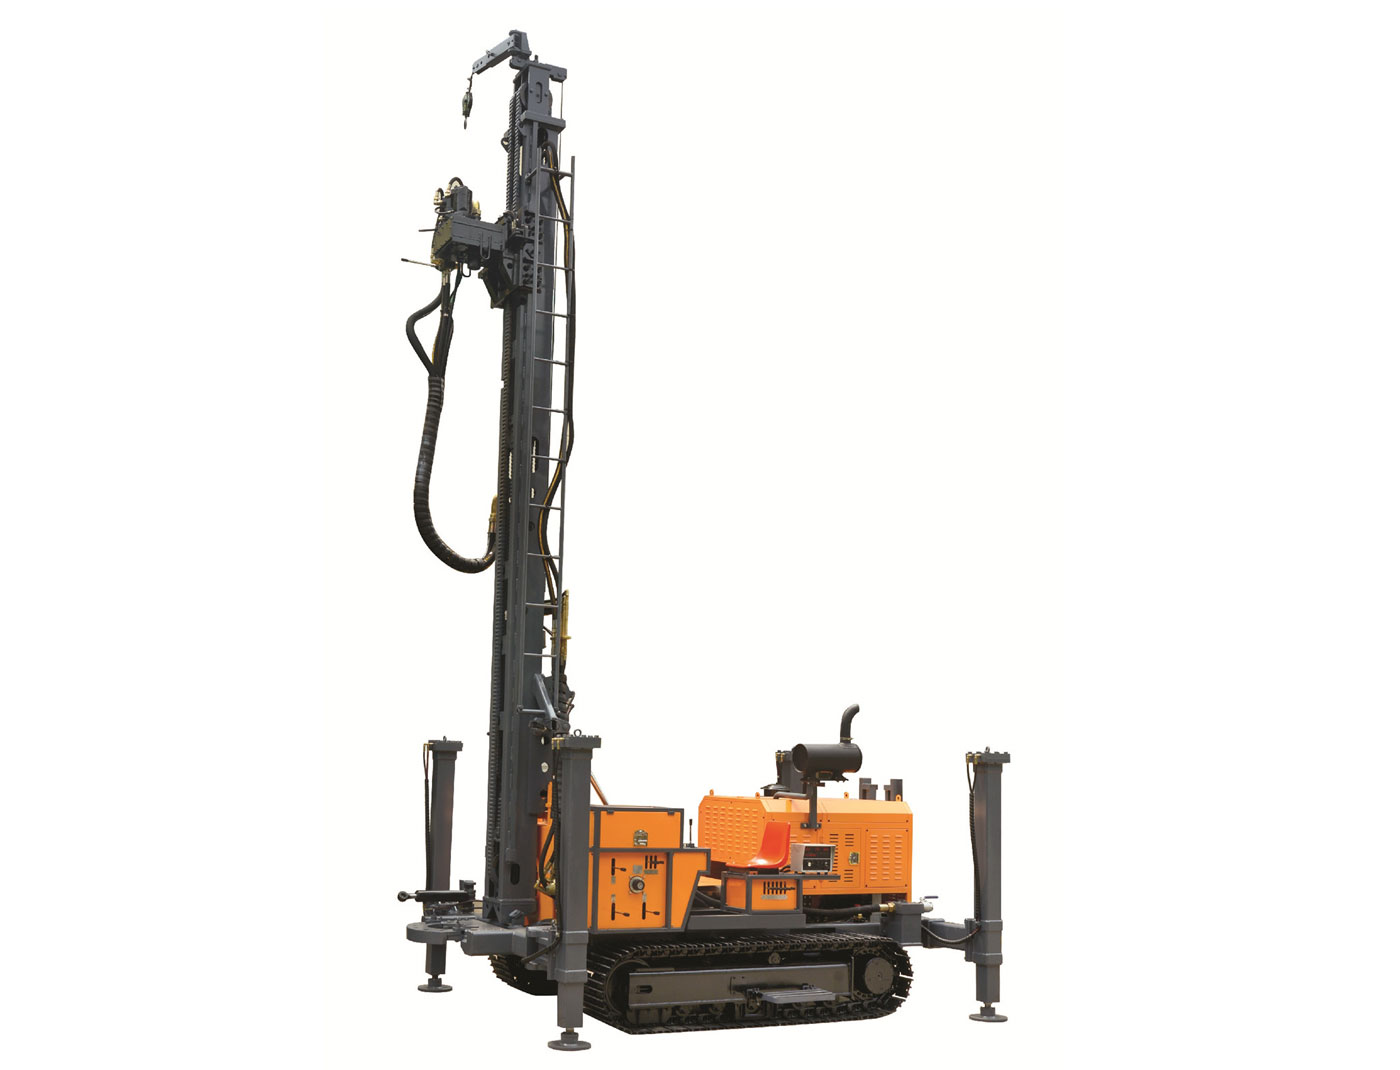 KAISHAN KW400 WATER WELL drilling rig